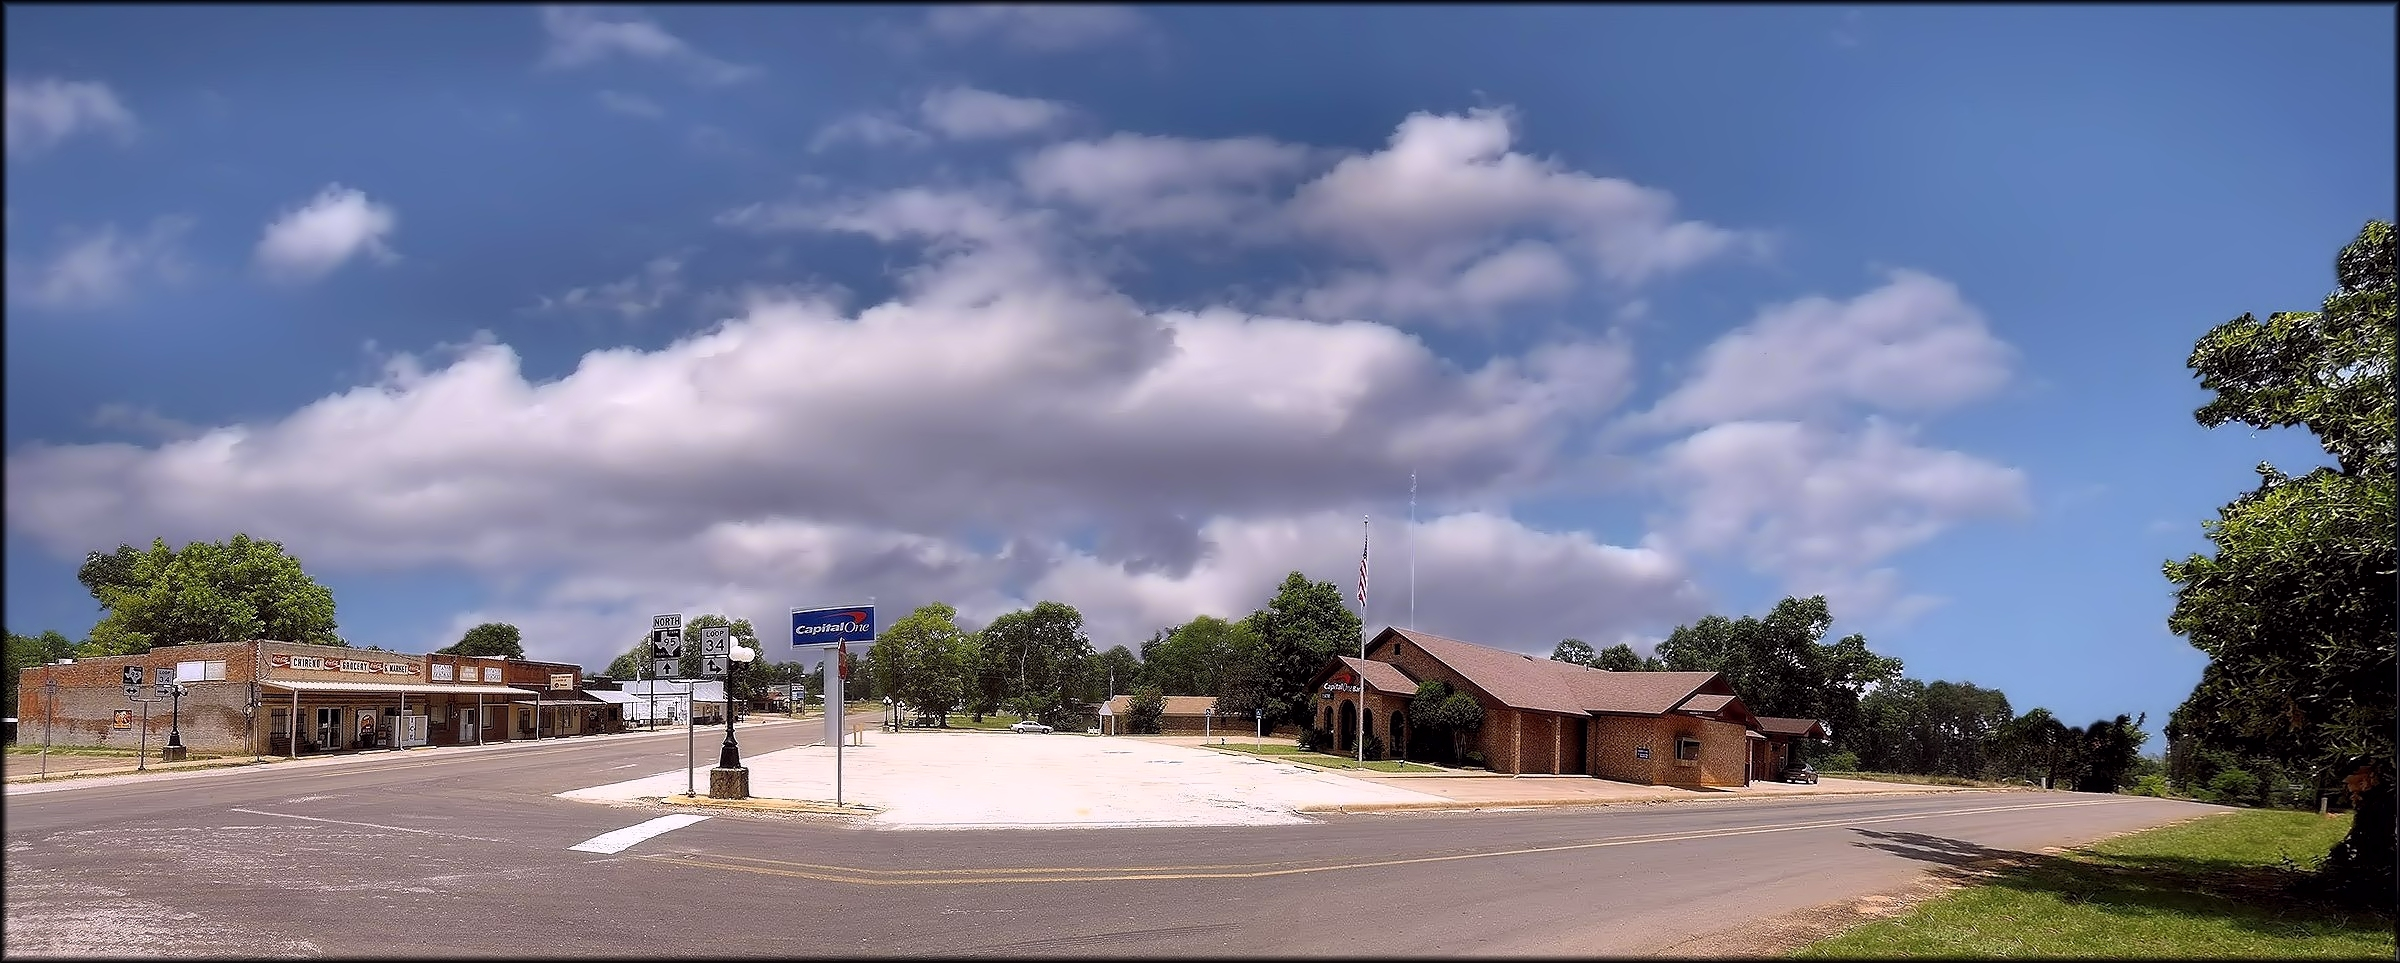 A View of Downtown Chireno, Texas in Nacogdoches County